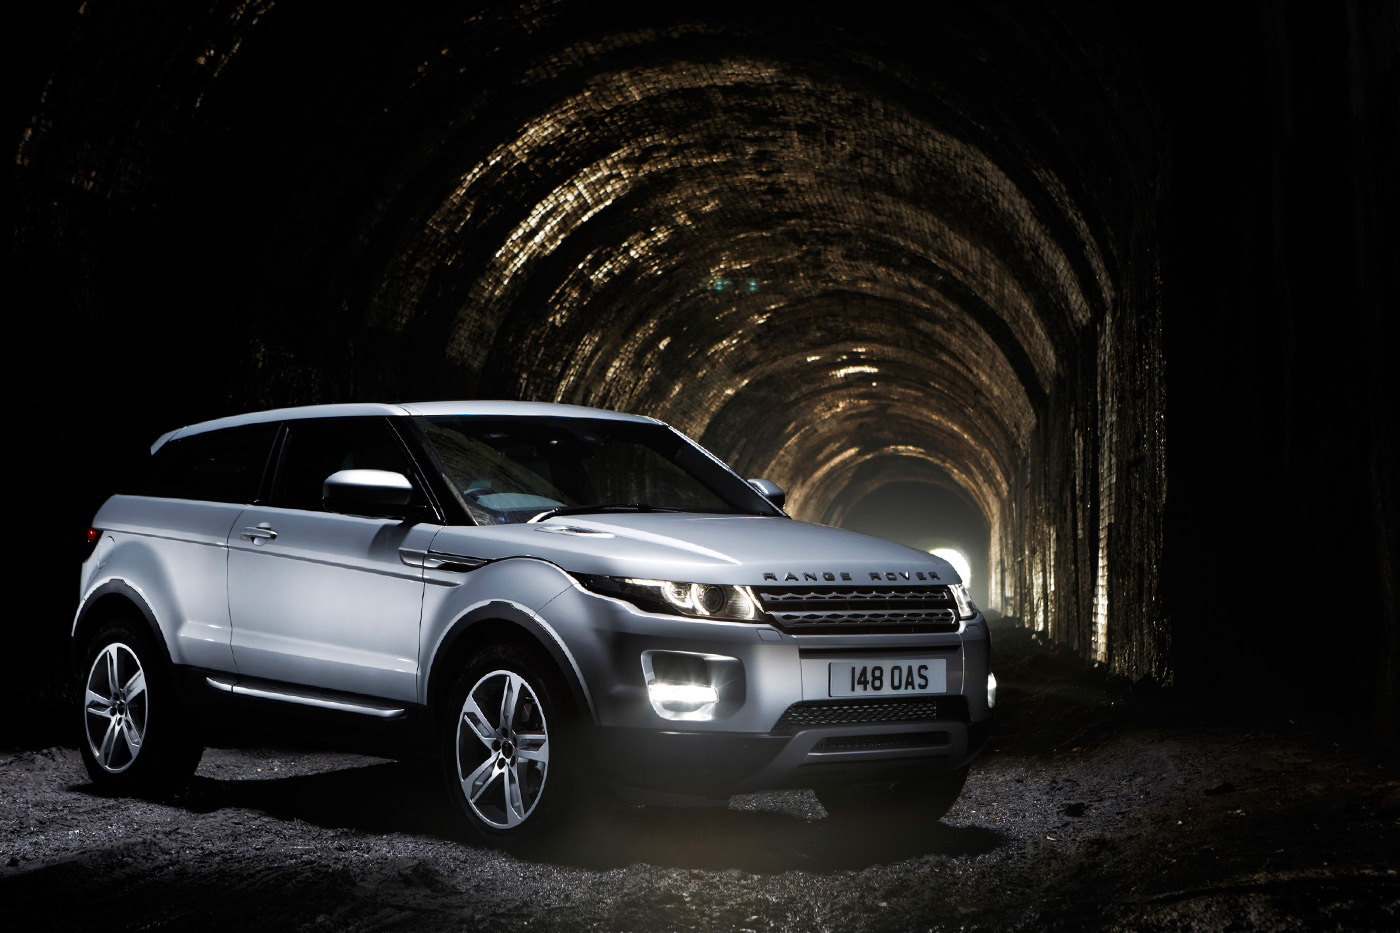 <p>Range Rover Evoque photographed in an abandoned railway tunnel under Liverpool.</p>